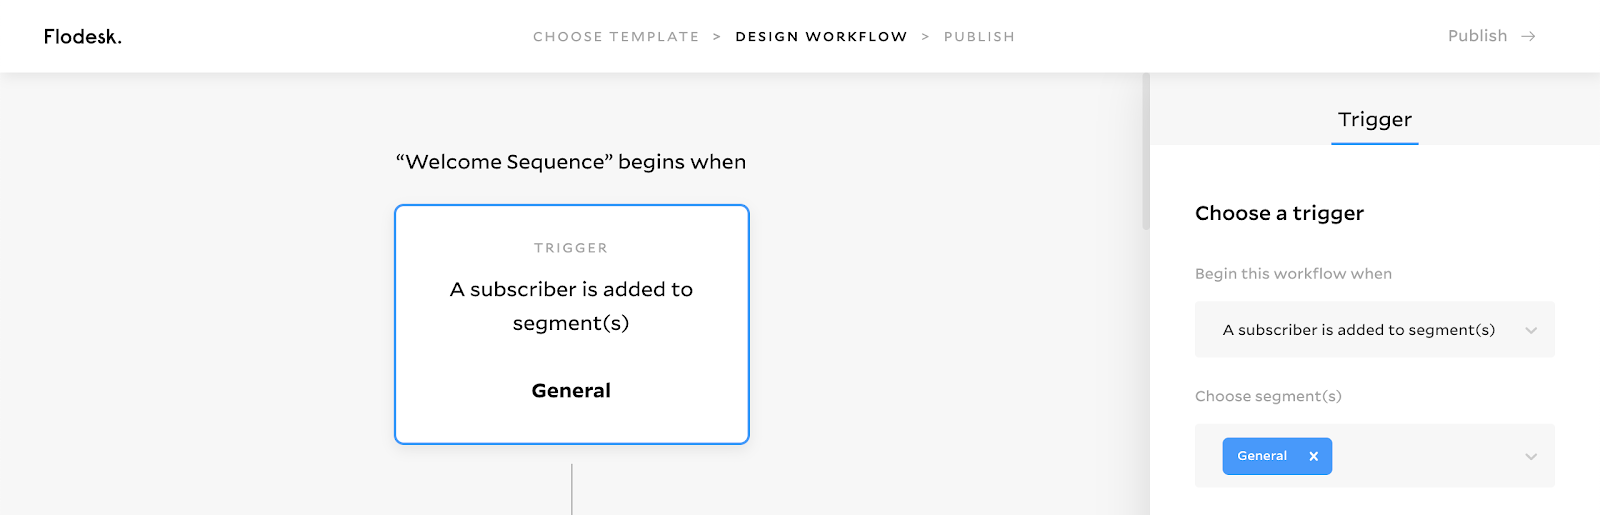 Creating a segment in Flodesk called General to trigger the welcome sequence workflow